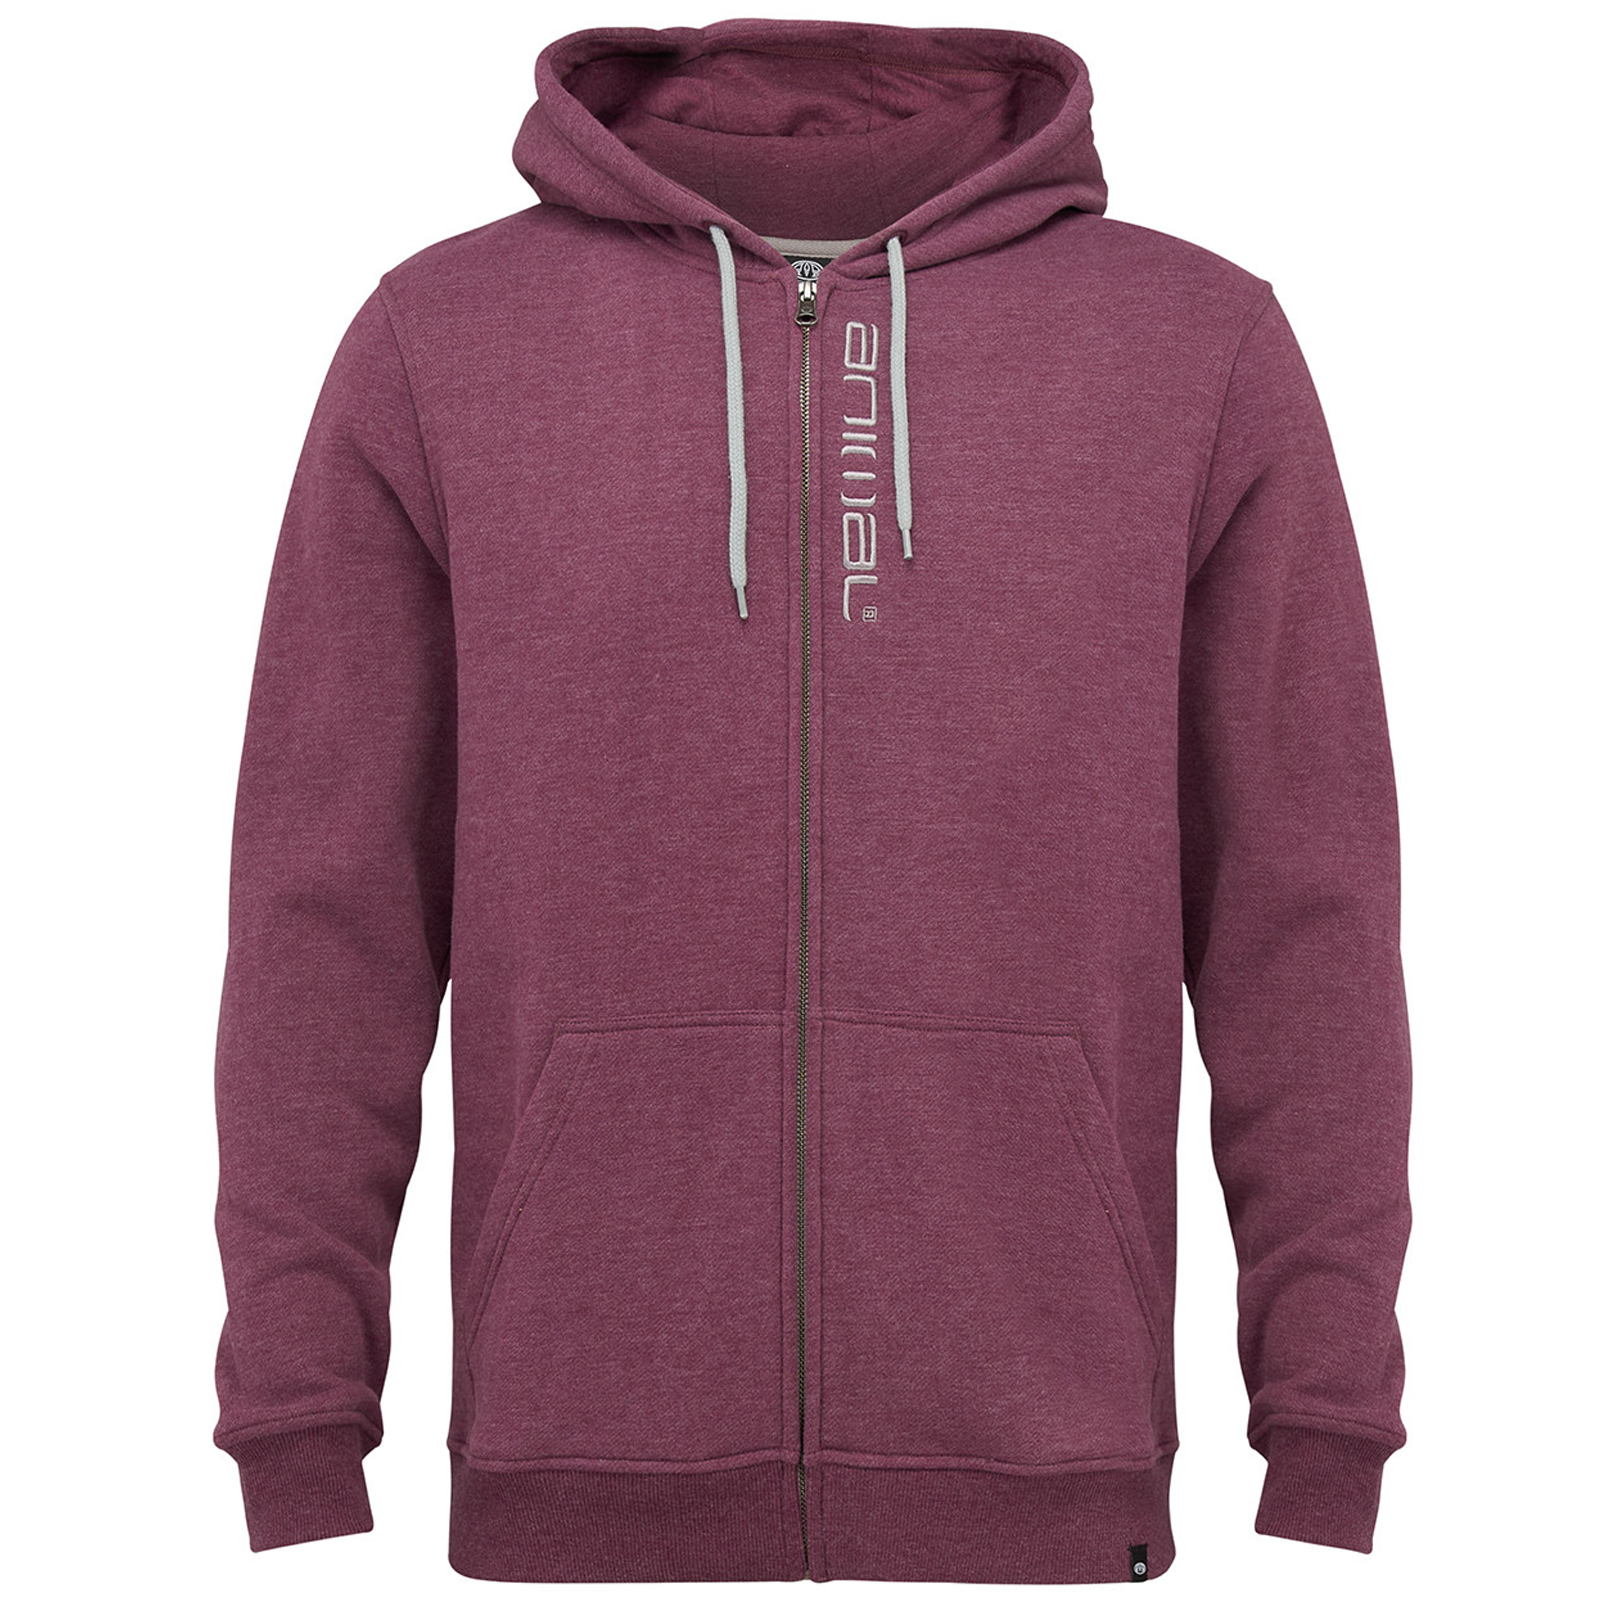 Find great deals on eBay for animal hoodies. Shop with confidence.